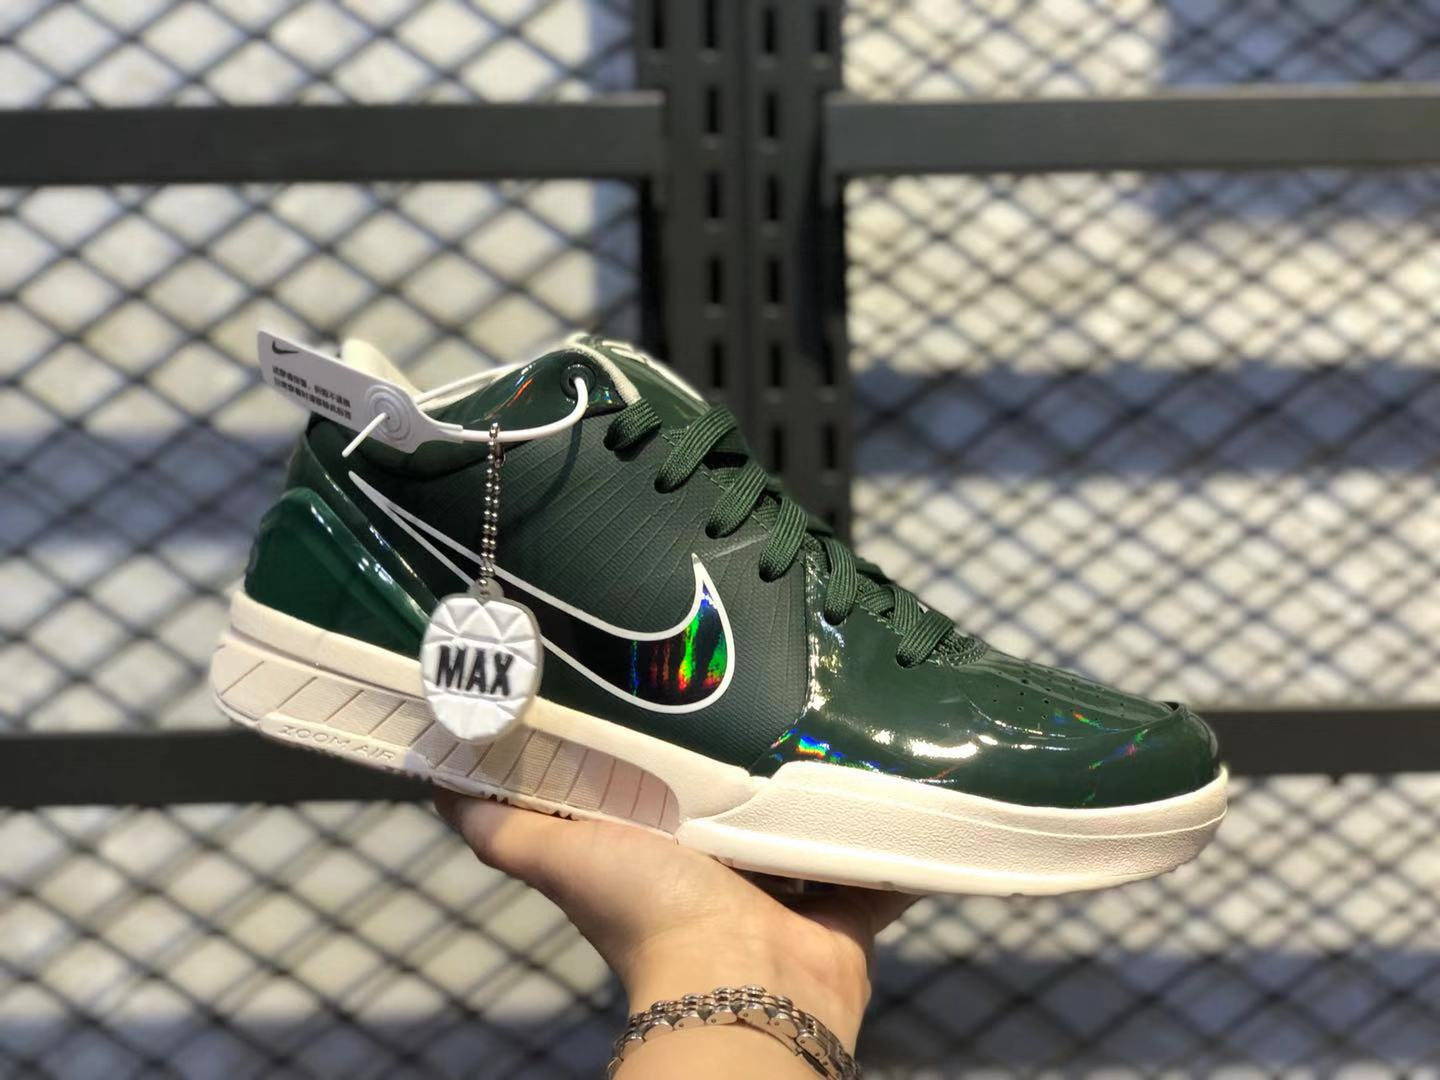 2020 Best Sell Undefeated x Nike Zoom Kobe 4 Protro CQ3869-301 Fir/Multi-Color